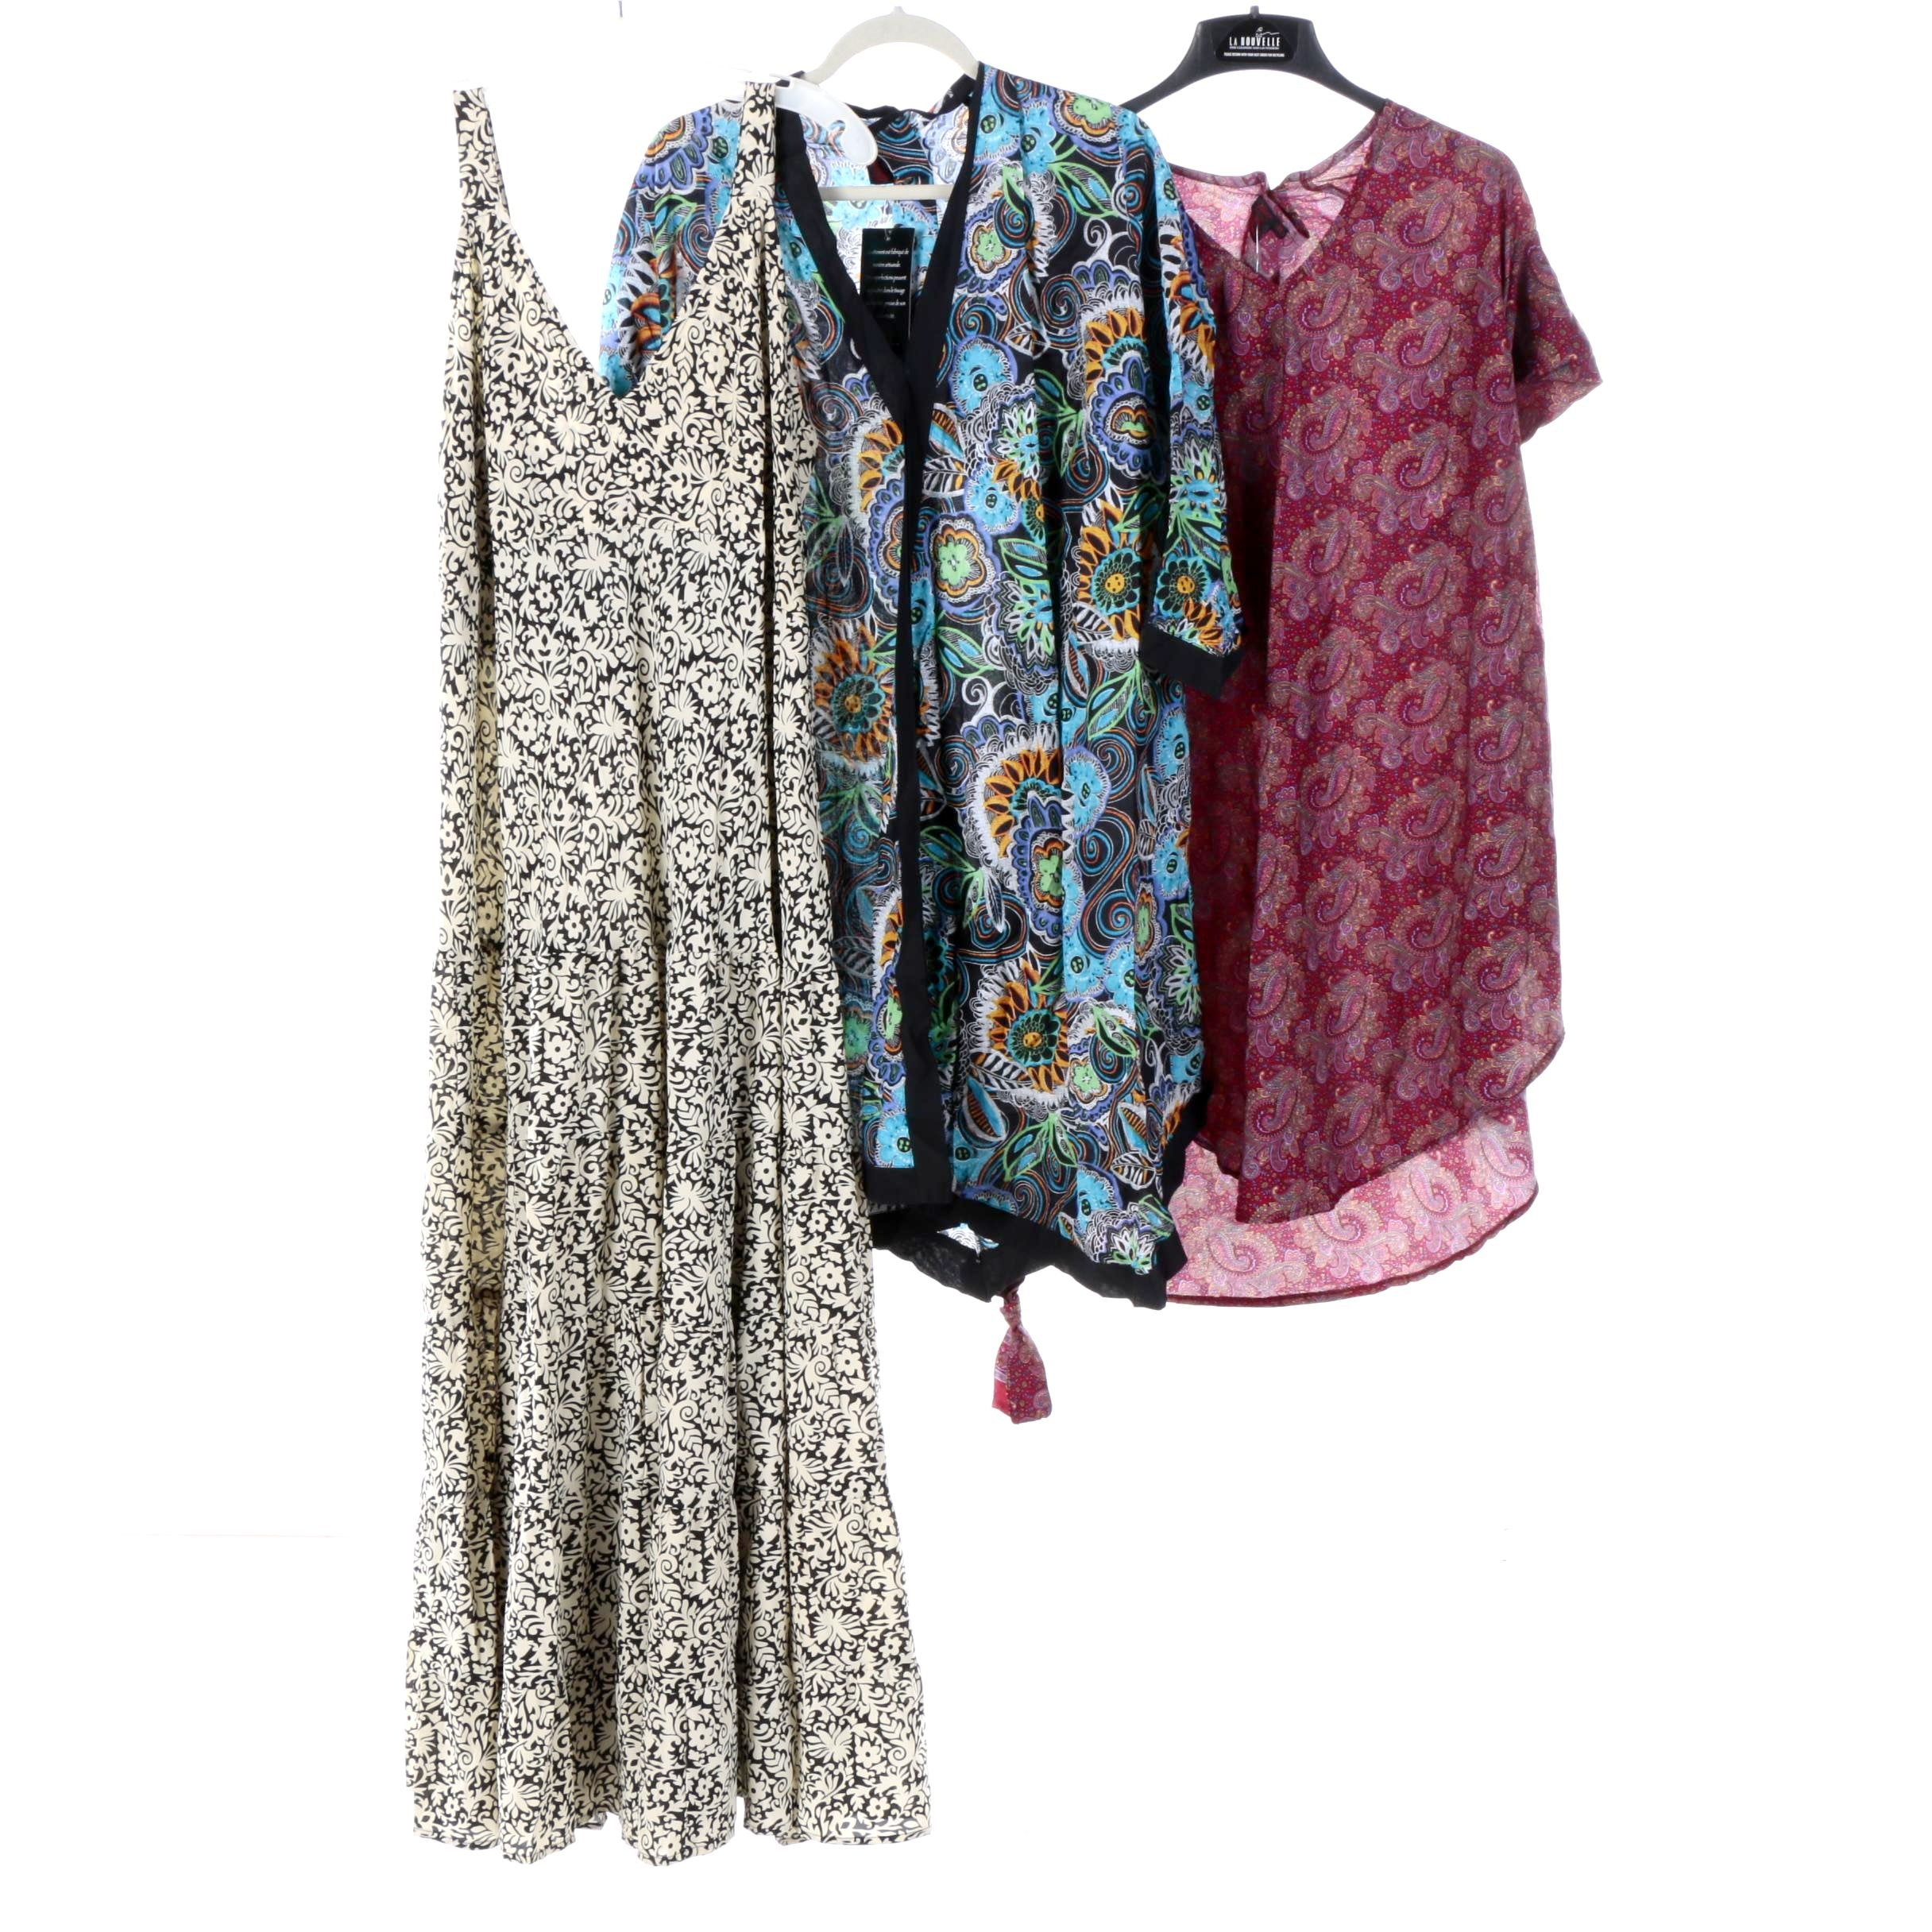 Women's Aller Simplement Tunic Tops and Sundress